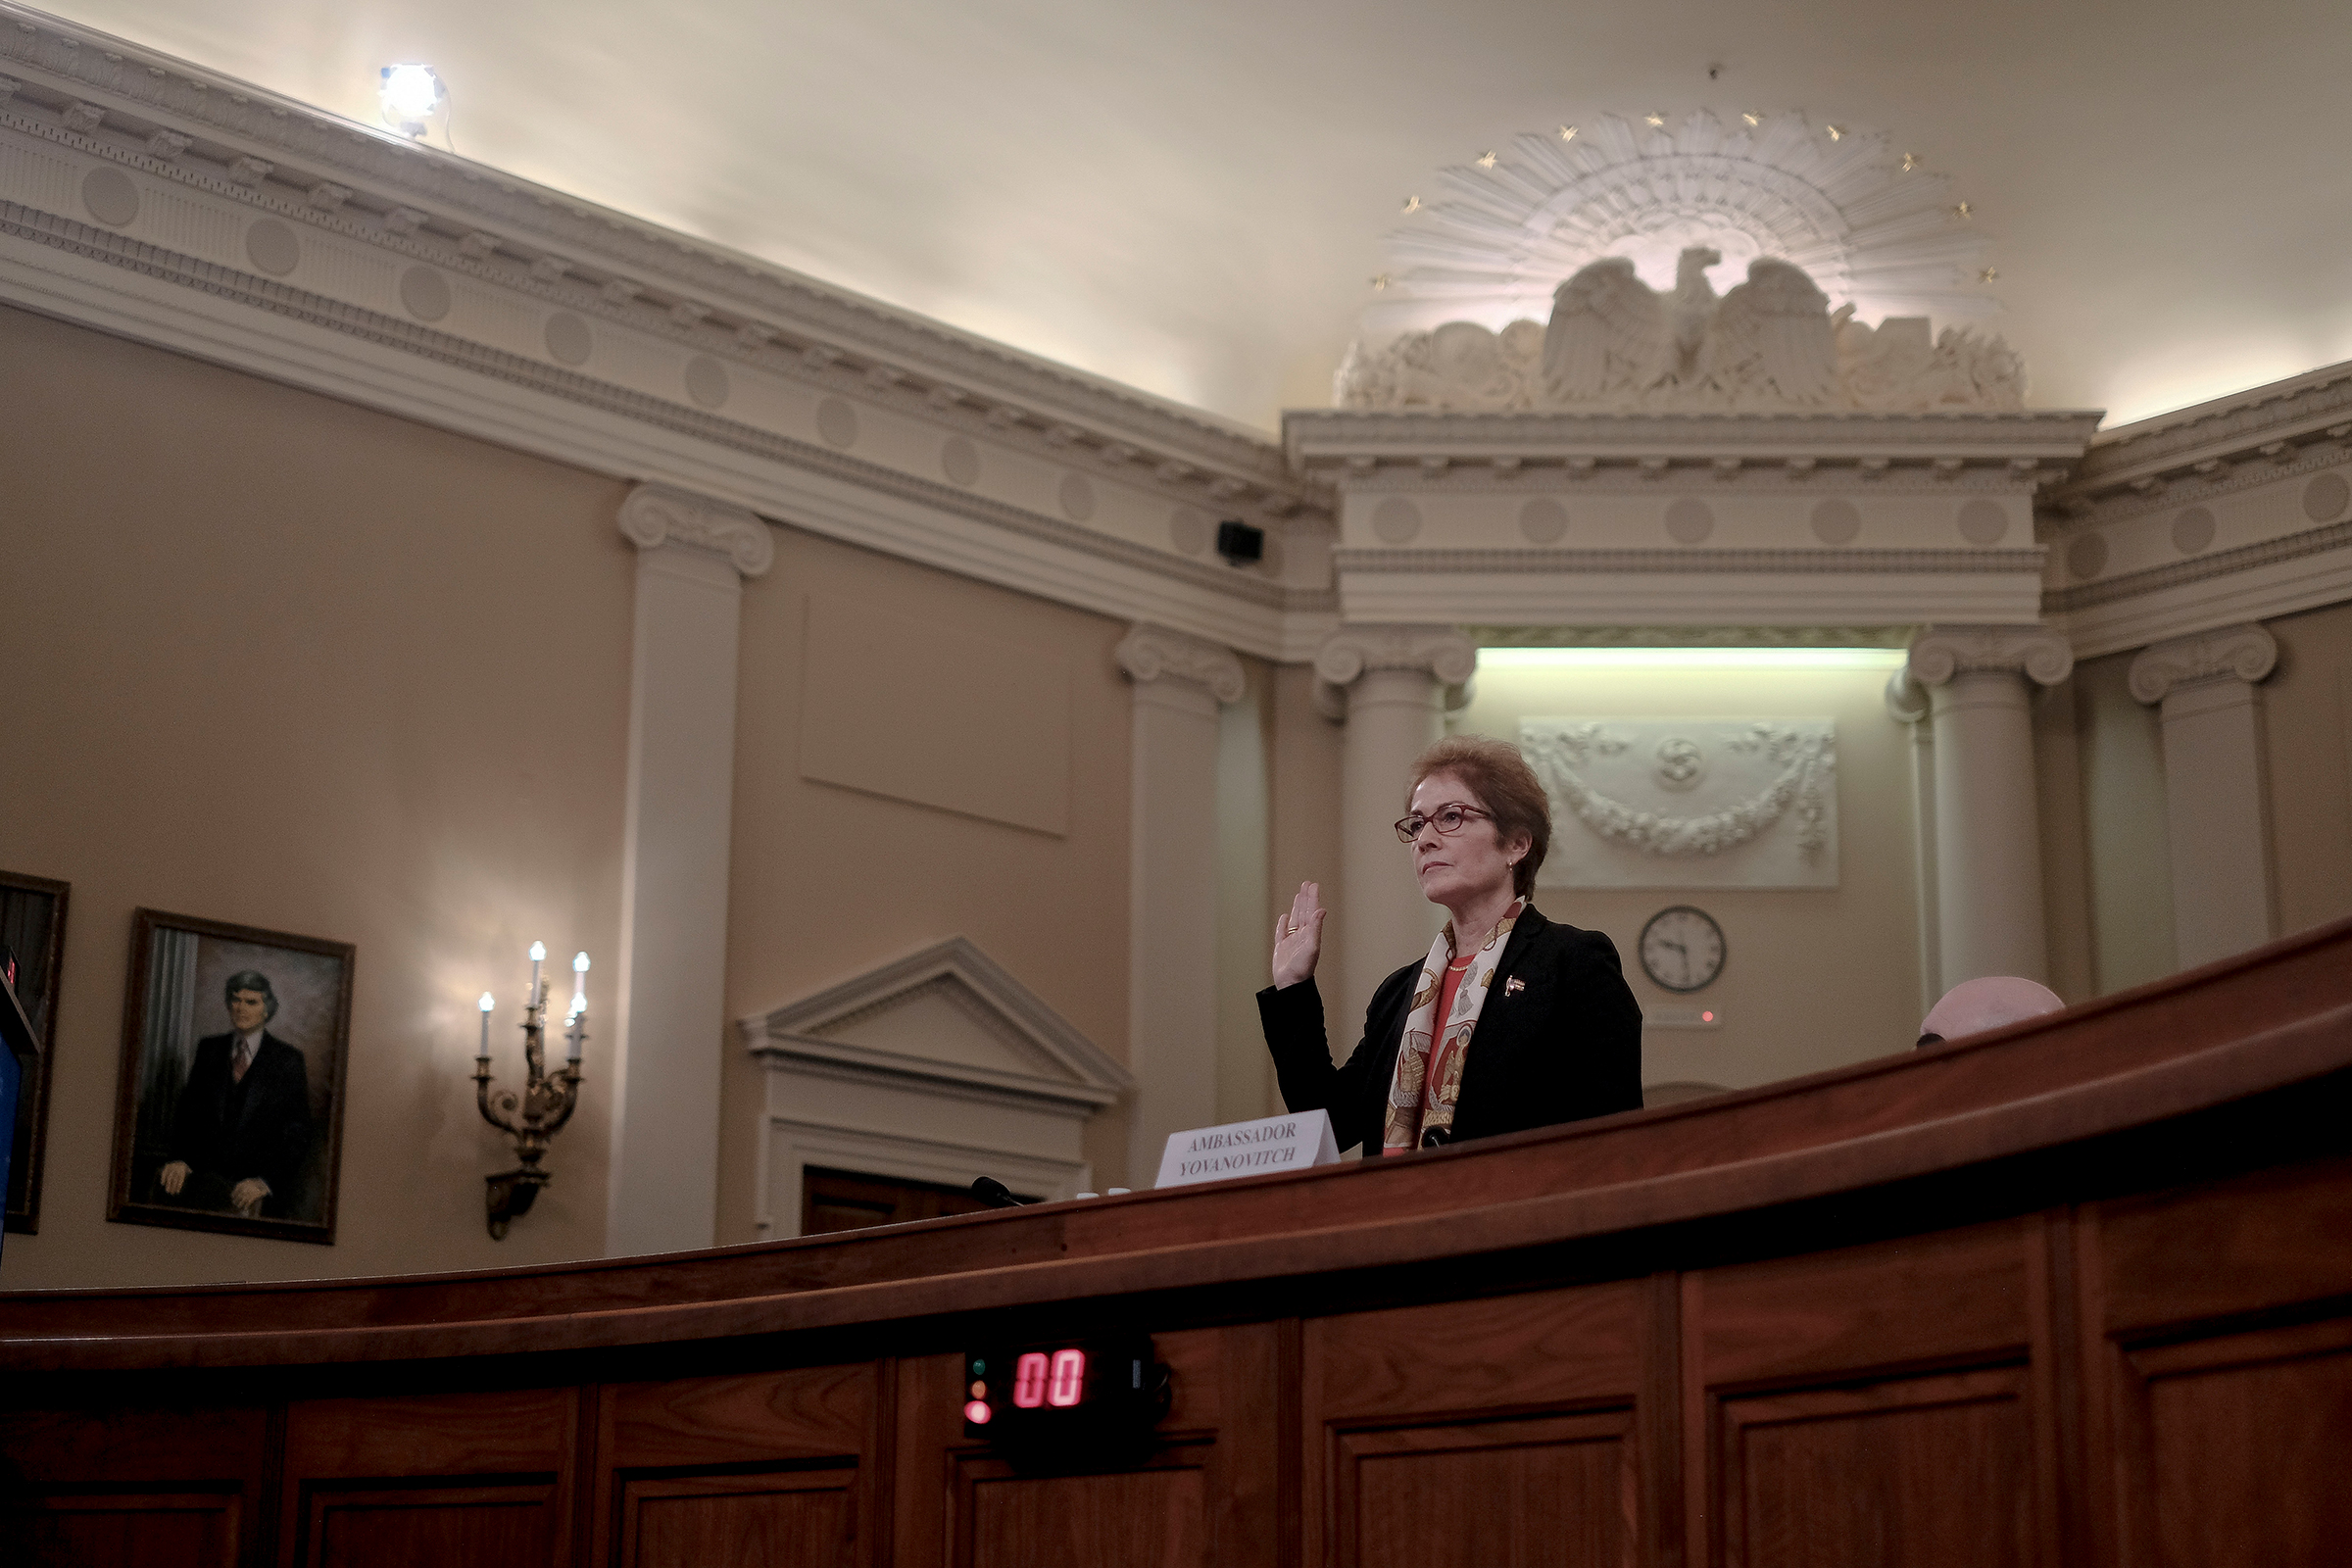 Marie Yovanovitch, the former ambassador to Ukraine, is sworn in during a House Intelligence Committee hearing on the impeachment inquiry in Washington, D.C., on Nov. 15, 2019.